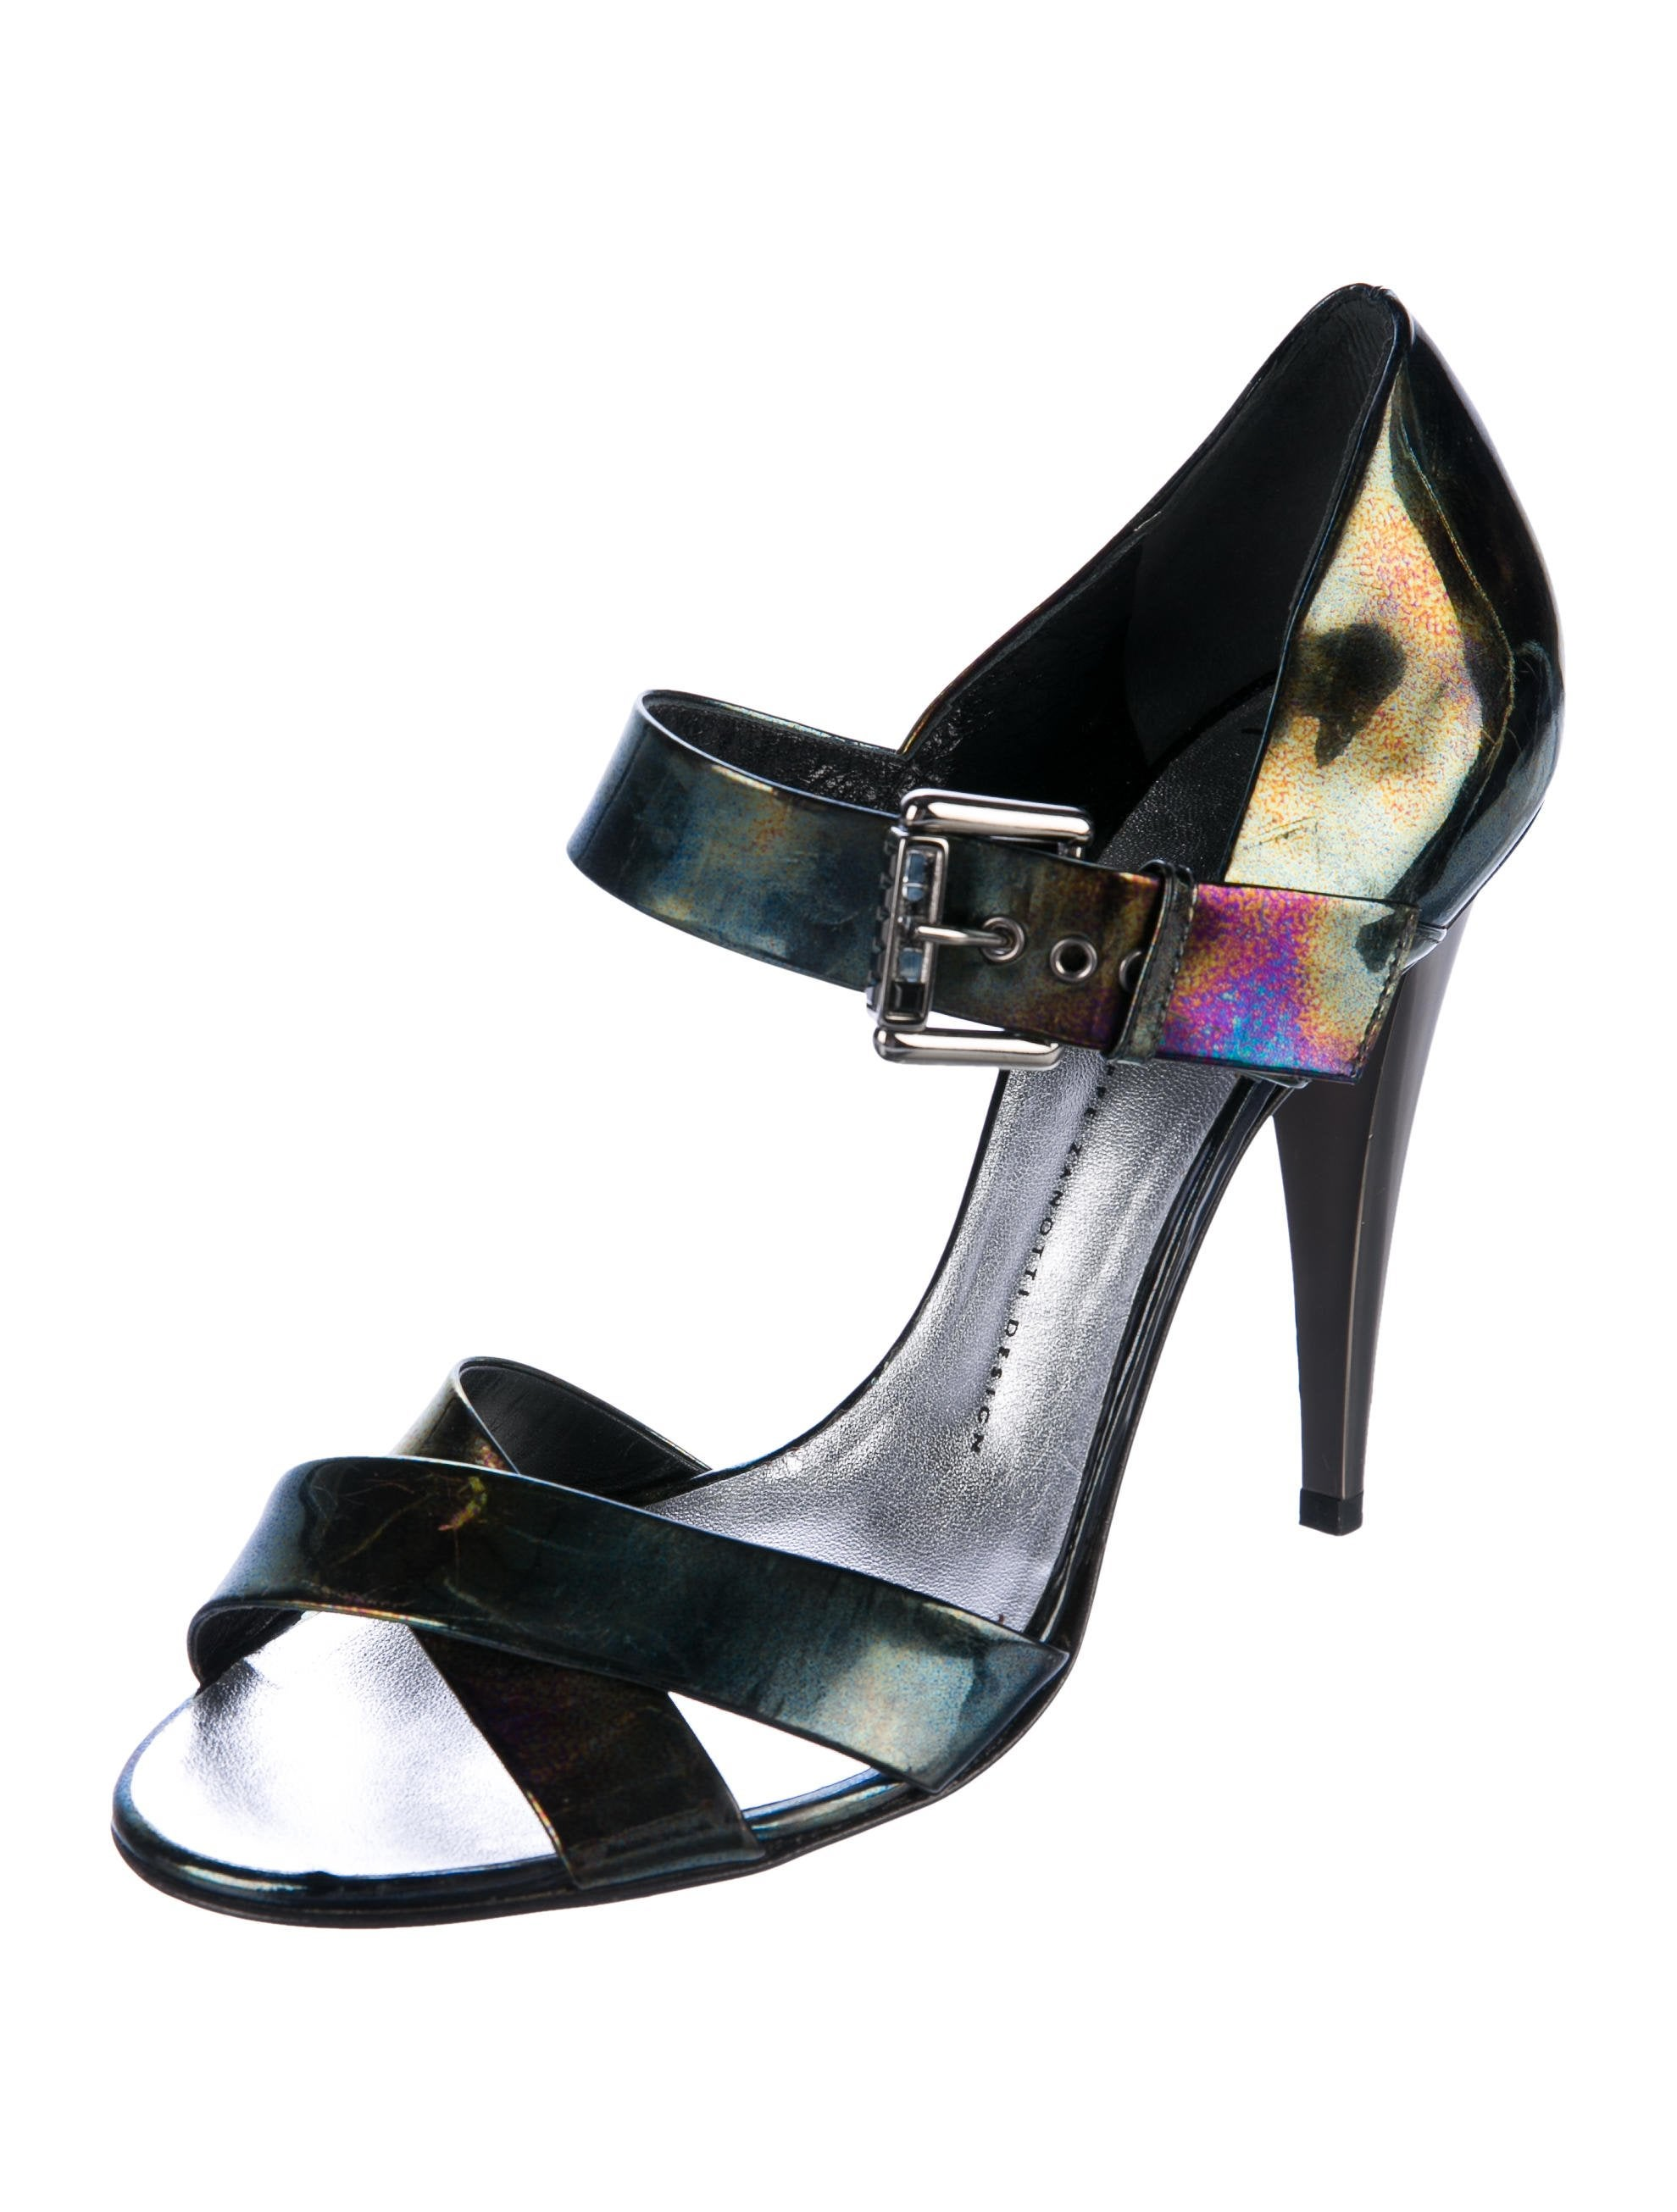 Giuseppe Zanotti Oil Slick Patent Leather Sandals best place cheap price 2014 for sale clearance great deals best sale for sale LbLqILV